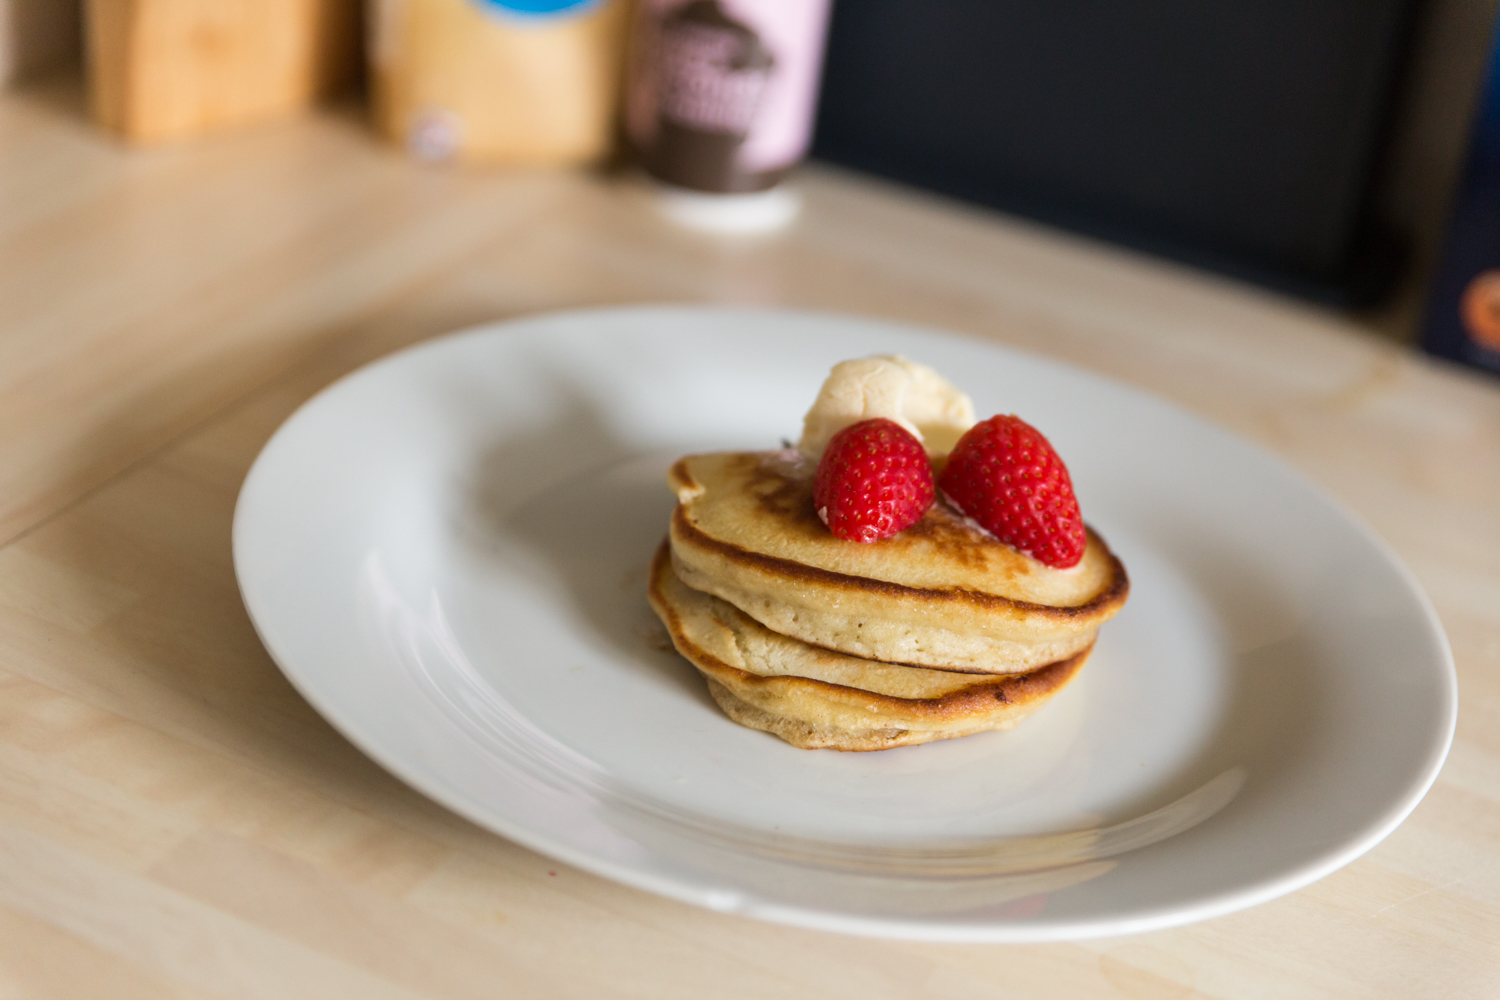 Three american style pancakes on a white plate with ice cream and strawberries on top.